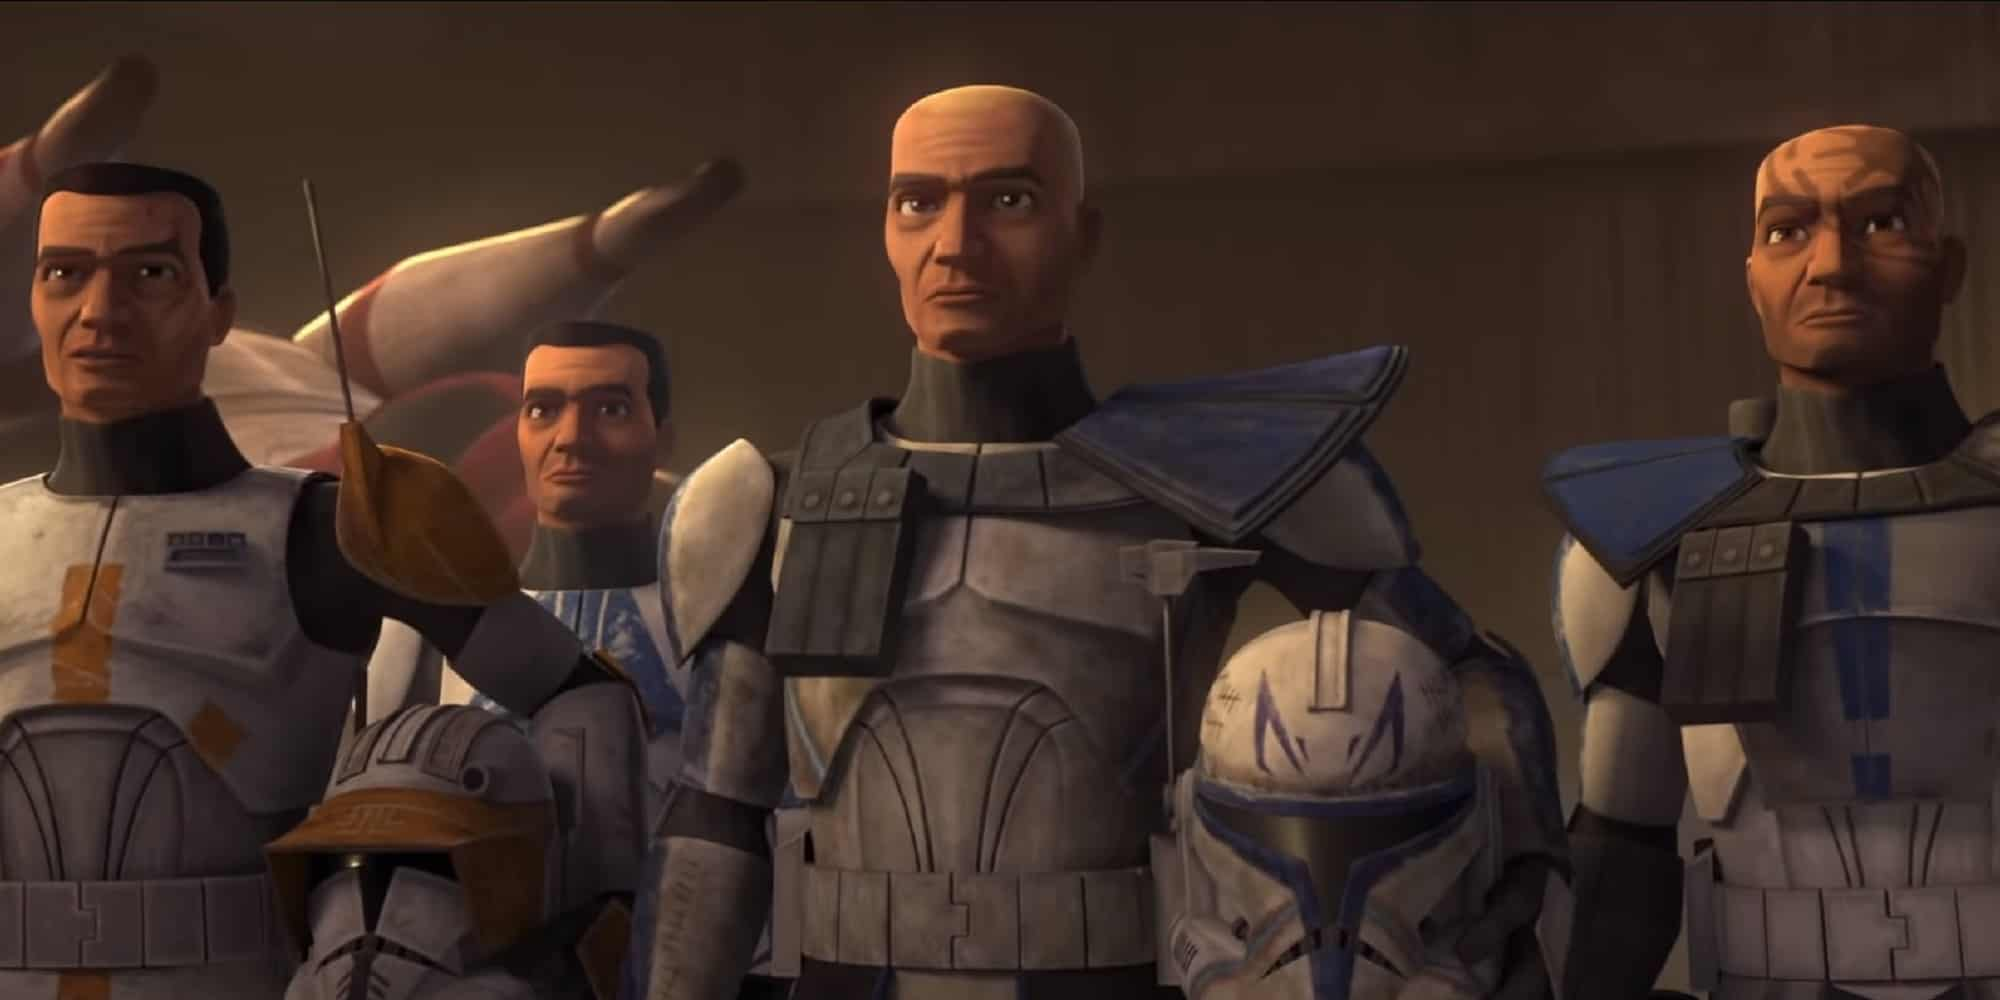 the clone wars final season trailer group of clones